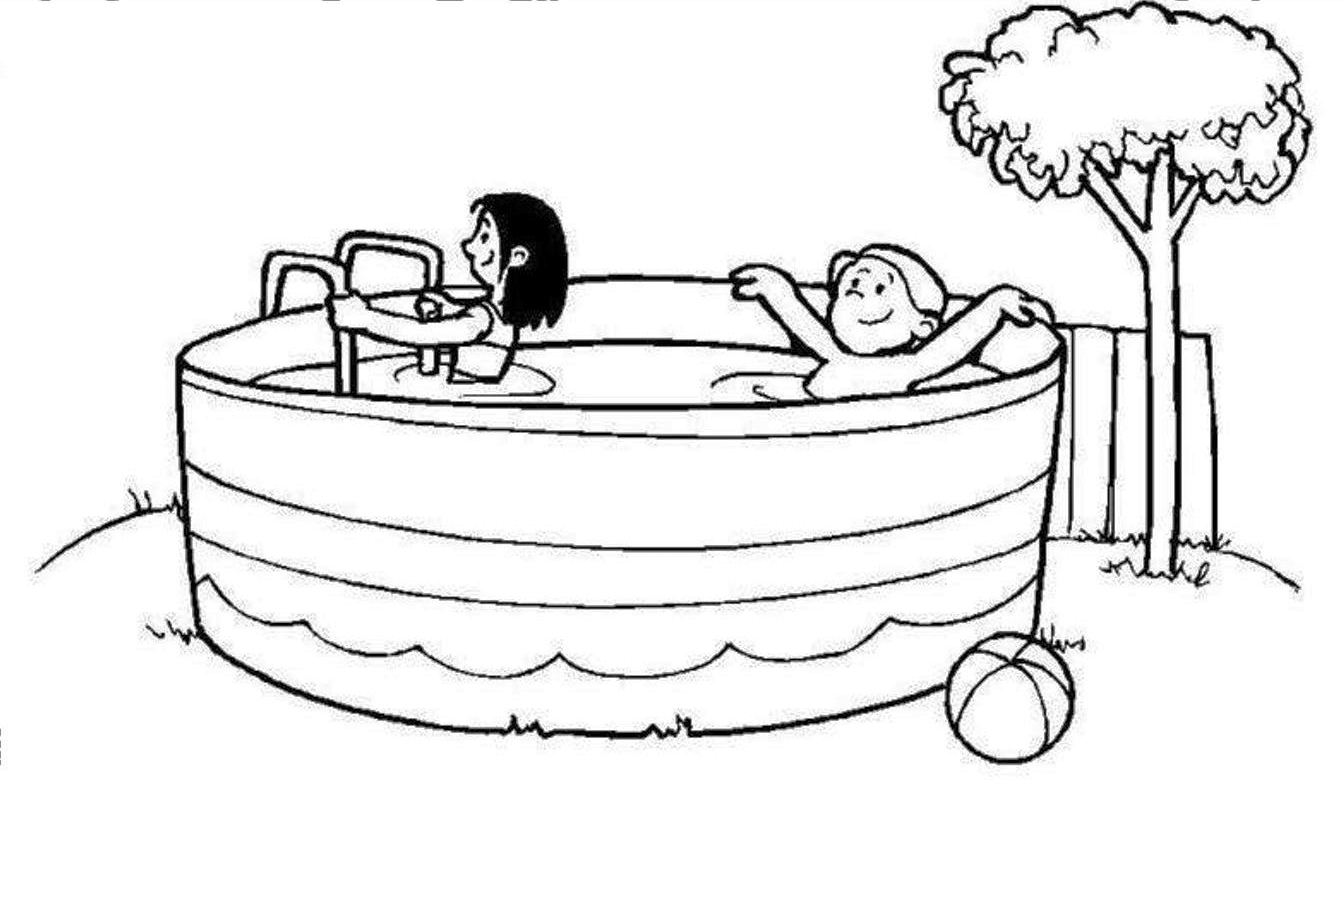 coloring pages swimming pool - photo#4